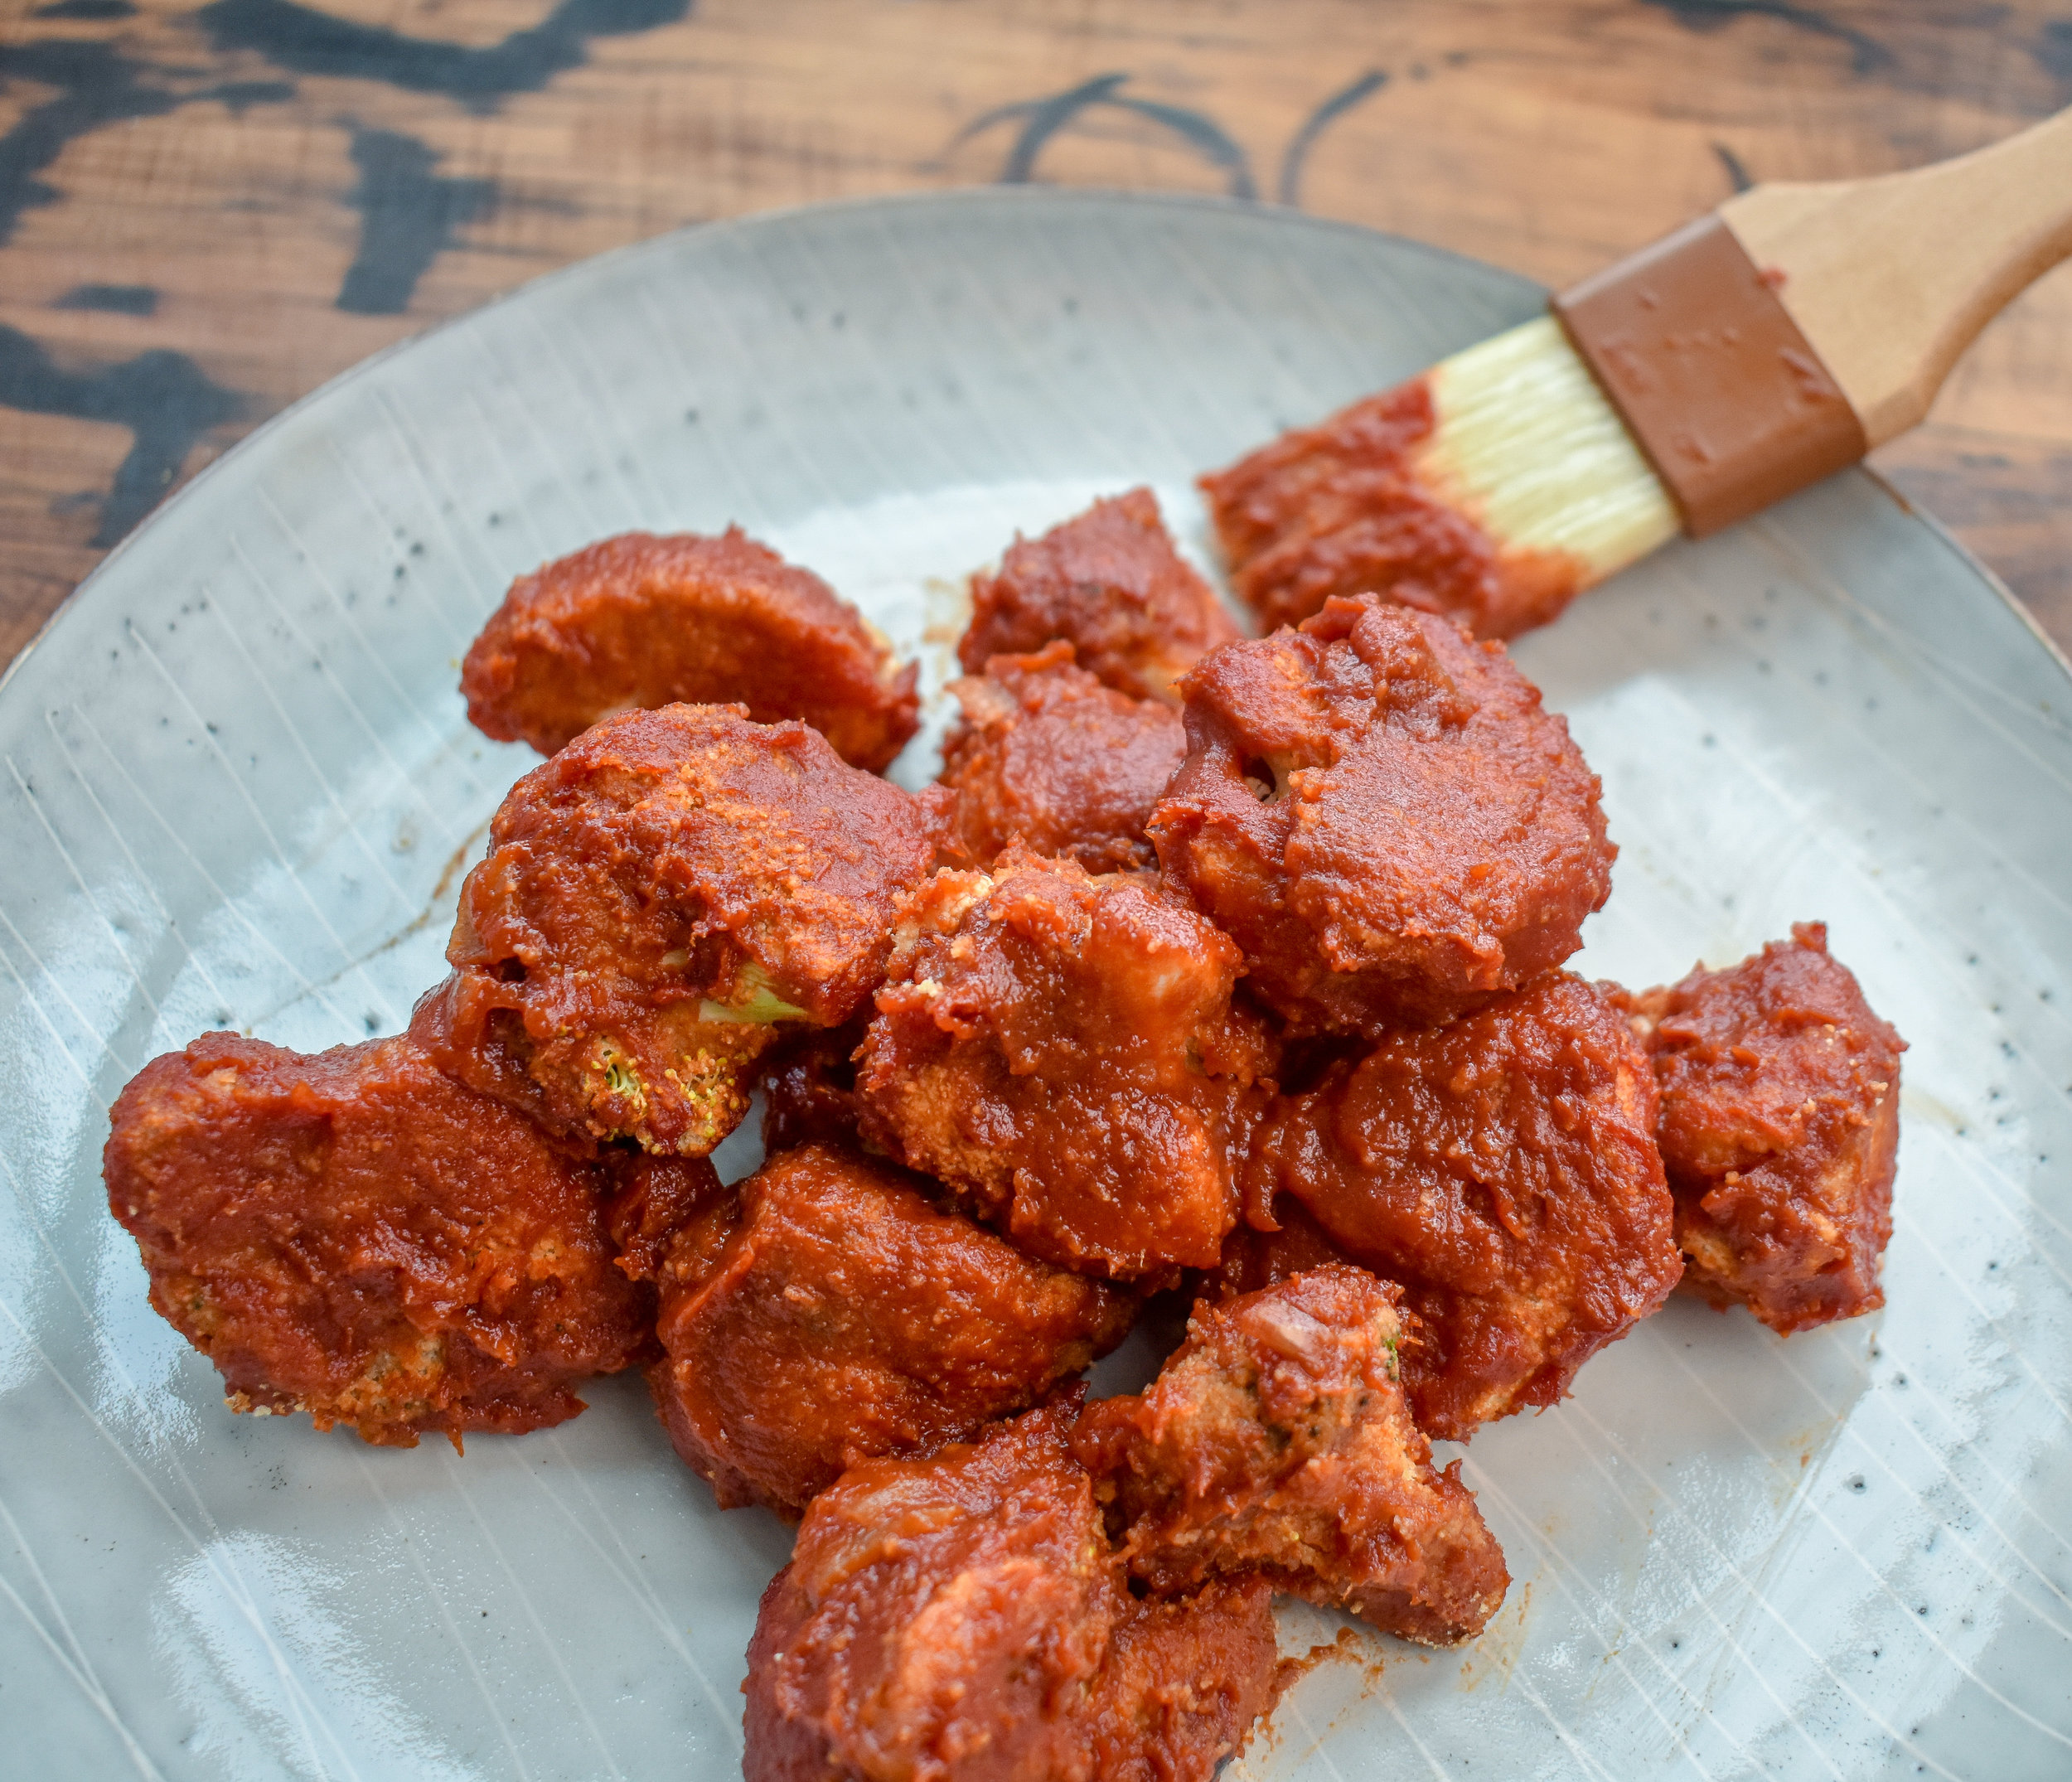 10. After the second bake, use the brush to coat on a bit more of the BBQ sauce to make them extra juicy + sticky. Serve + eat!